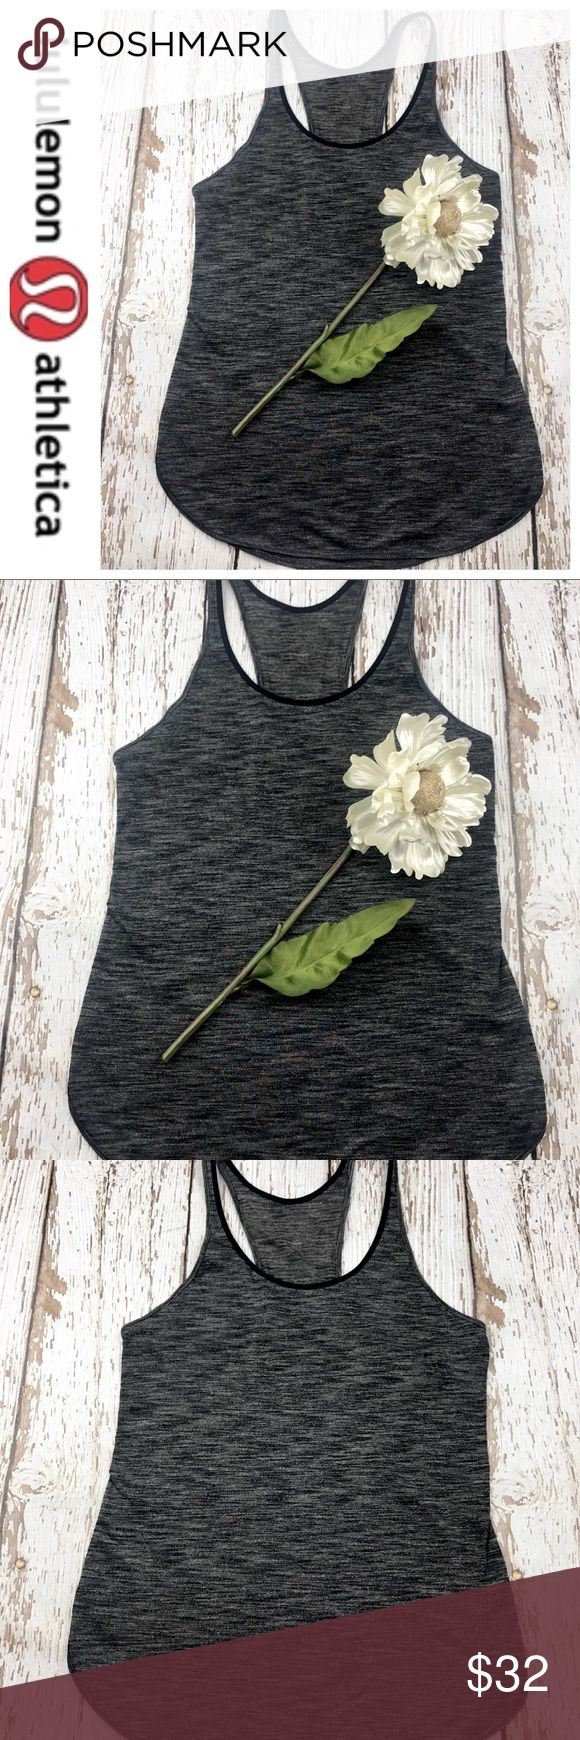 💕SALE💕Lululemon Black Gray Razorback  Tank Top Fabulous 💕SALE💕Lululemon Black Gray Razorback Tank Top lululemon athletica Tops Tank Tops